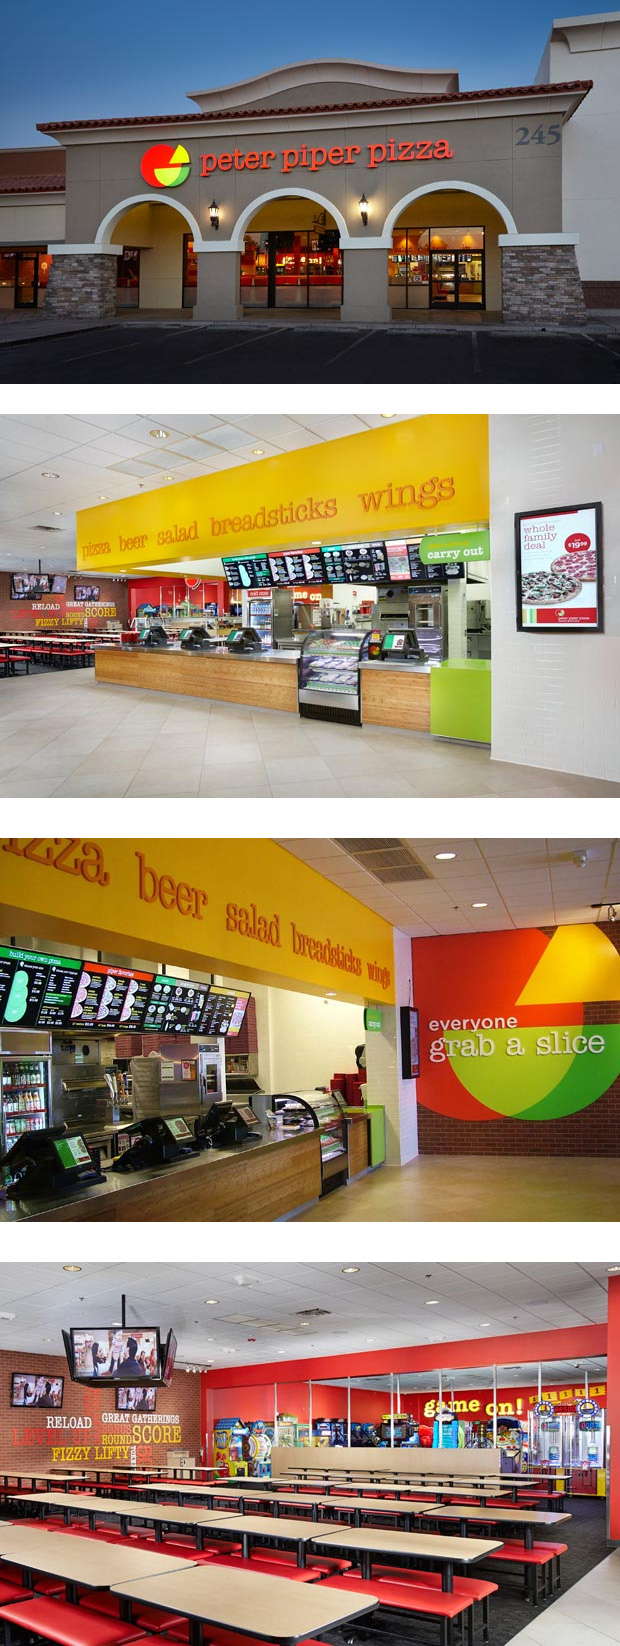 New Logo and Restaurant Design for Peter Piper Pizza by WD Partners